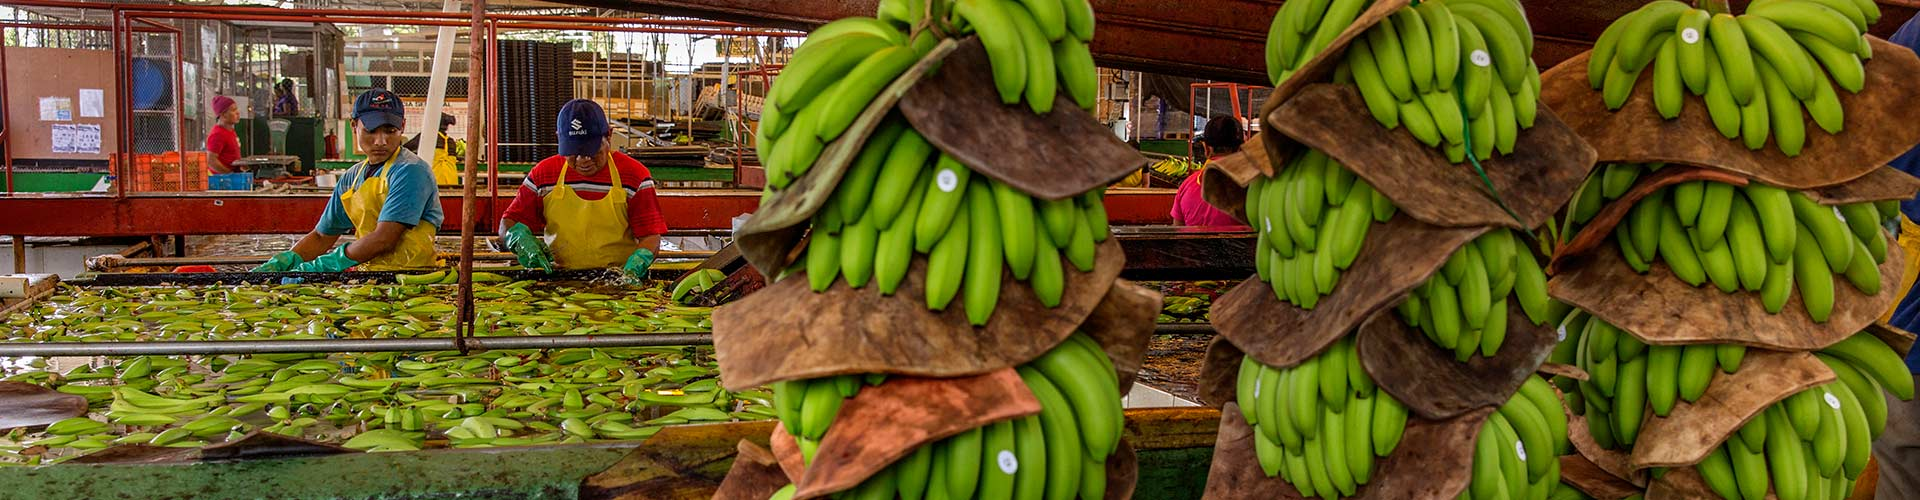 AgroFair-Fairtrade-Bio-Organic-Bananas-Fruit-home-slider-02